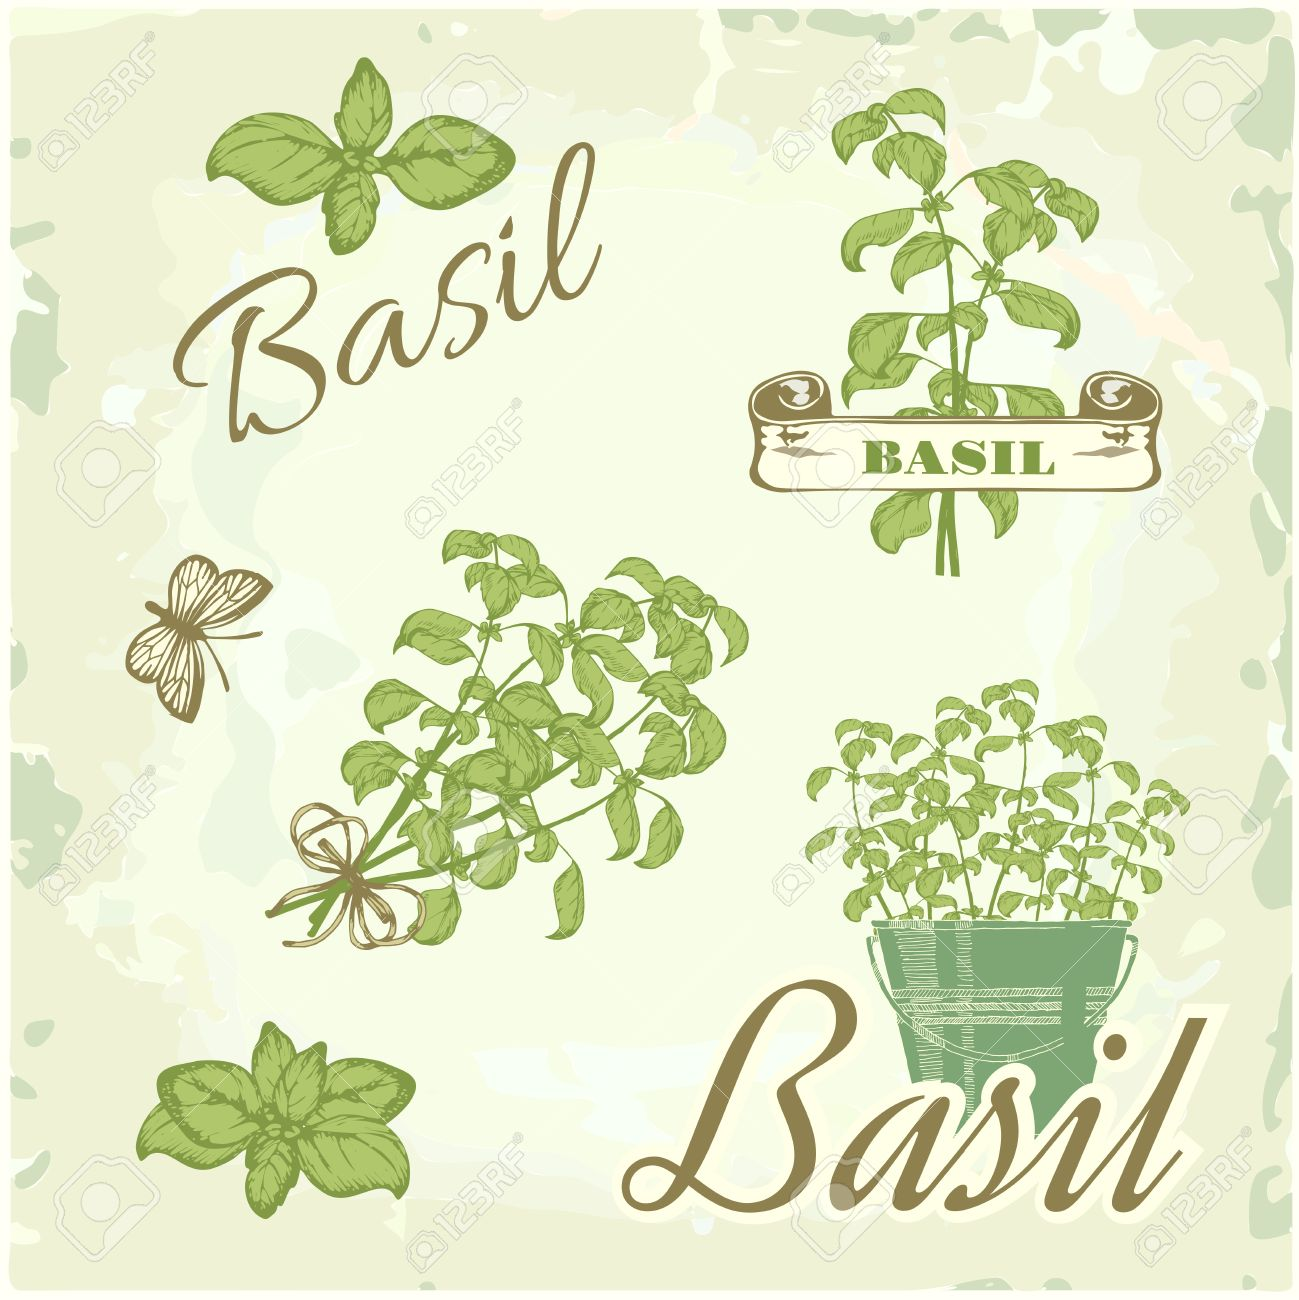 Basil, herb, plant, nature, vintage background, packaging calligraphy - 23075198